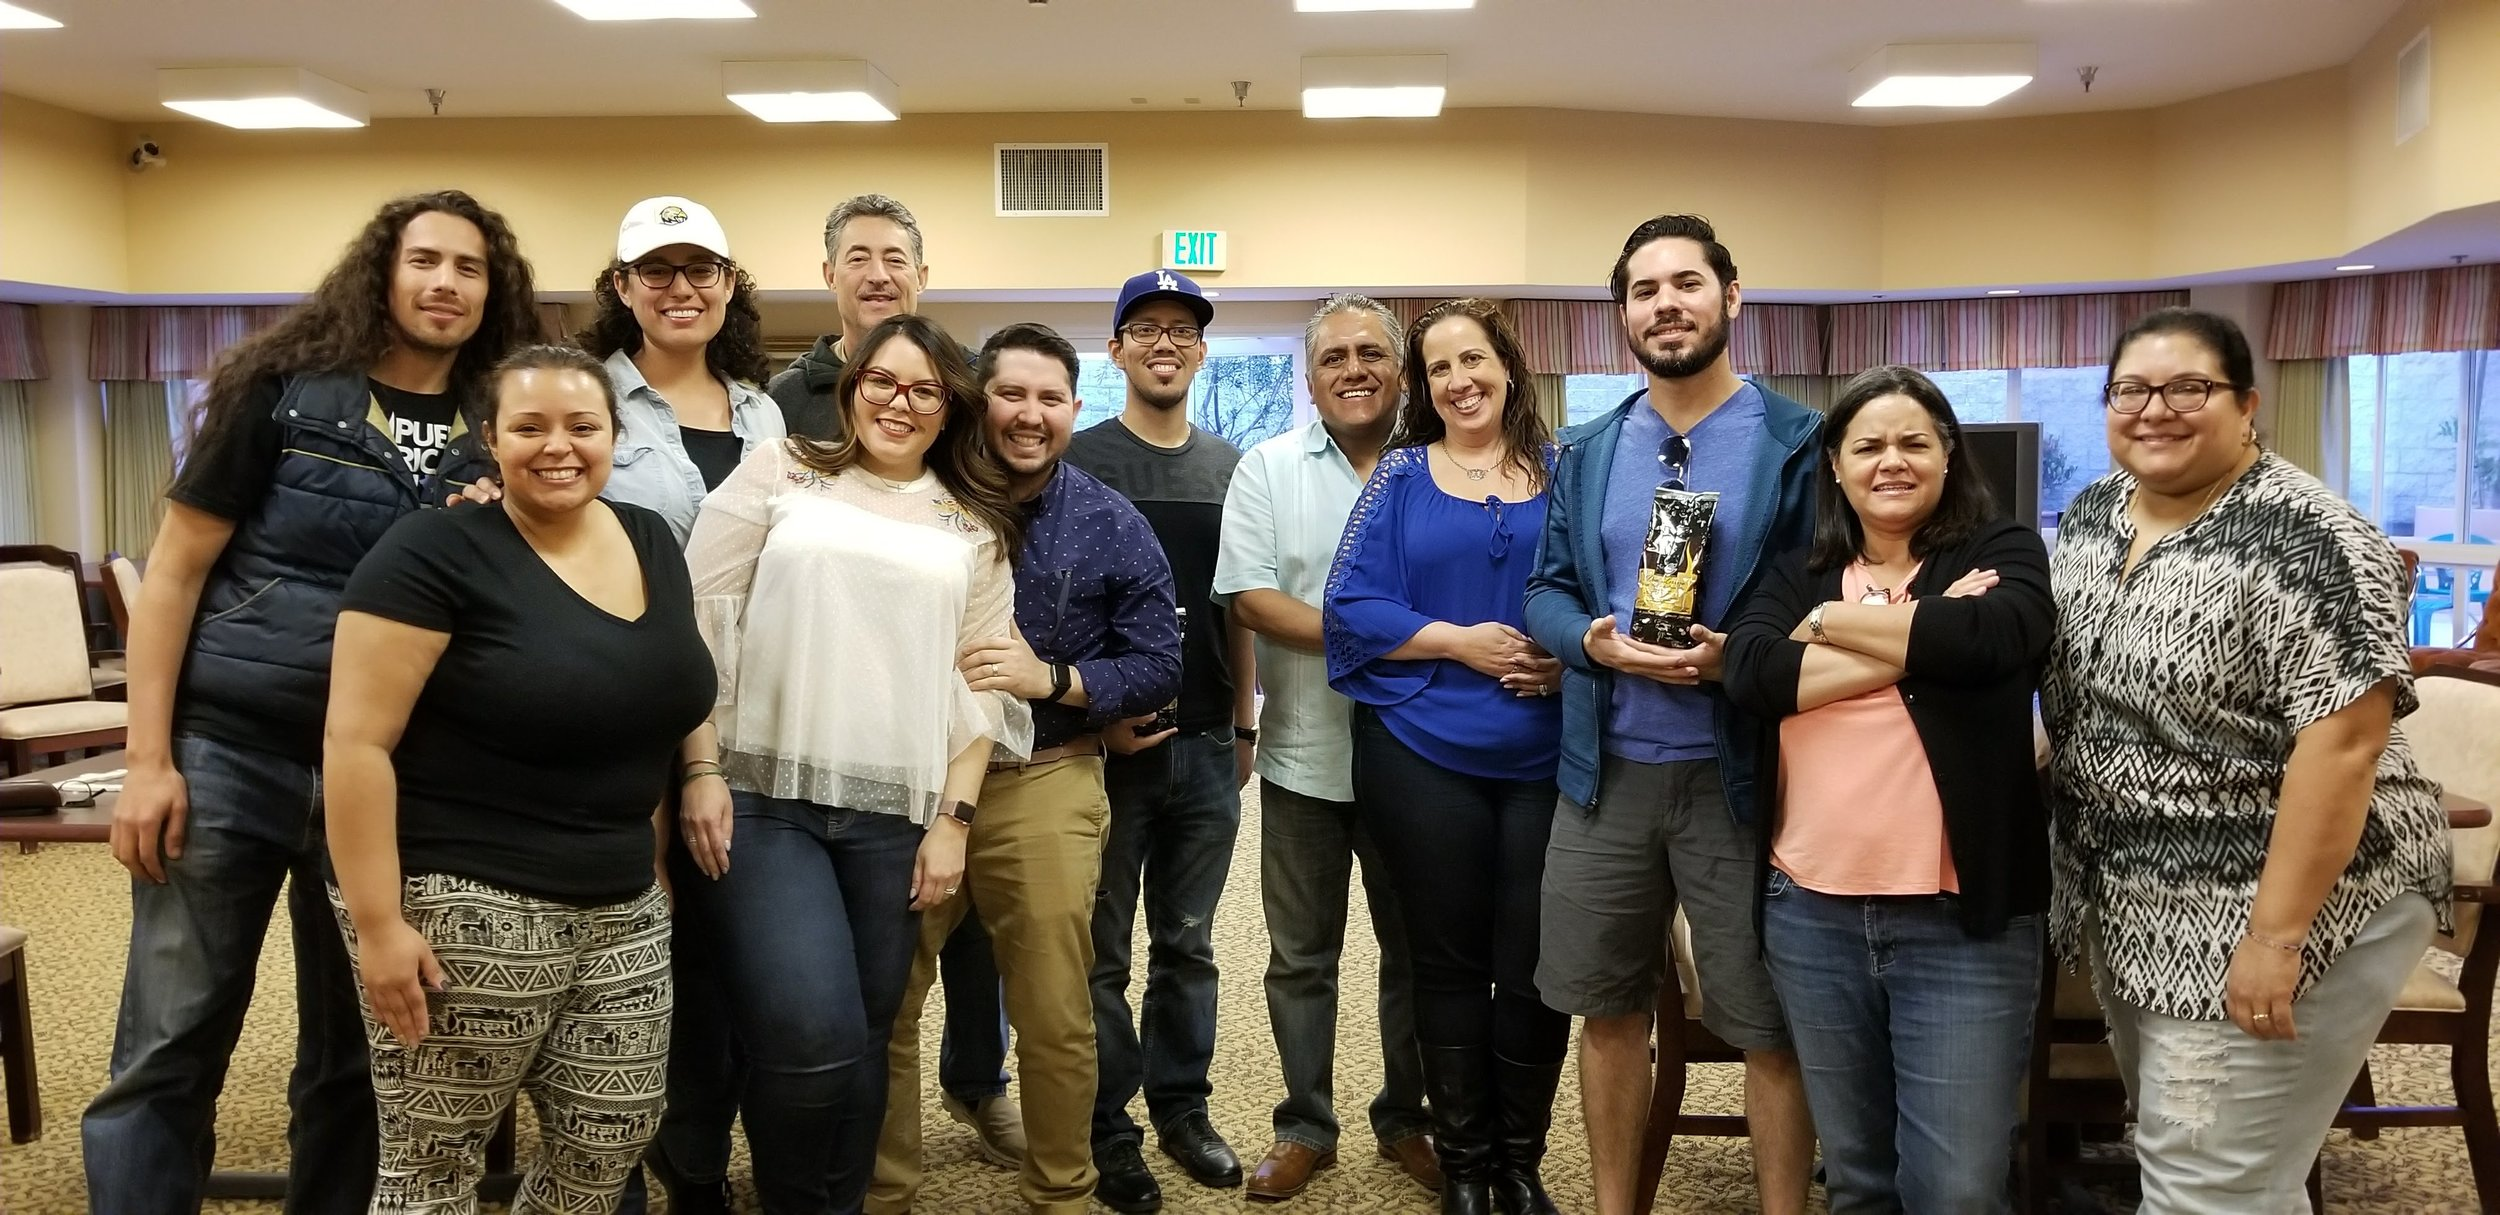 2nd Annual Café y Dominoes - March 2018, PRiA held the 2nd Annual Café y Dominos Tournament in Hollywood, CA. Puerto Ricans In Action is committed to providing family events for our community.